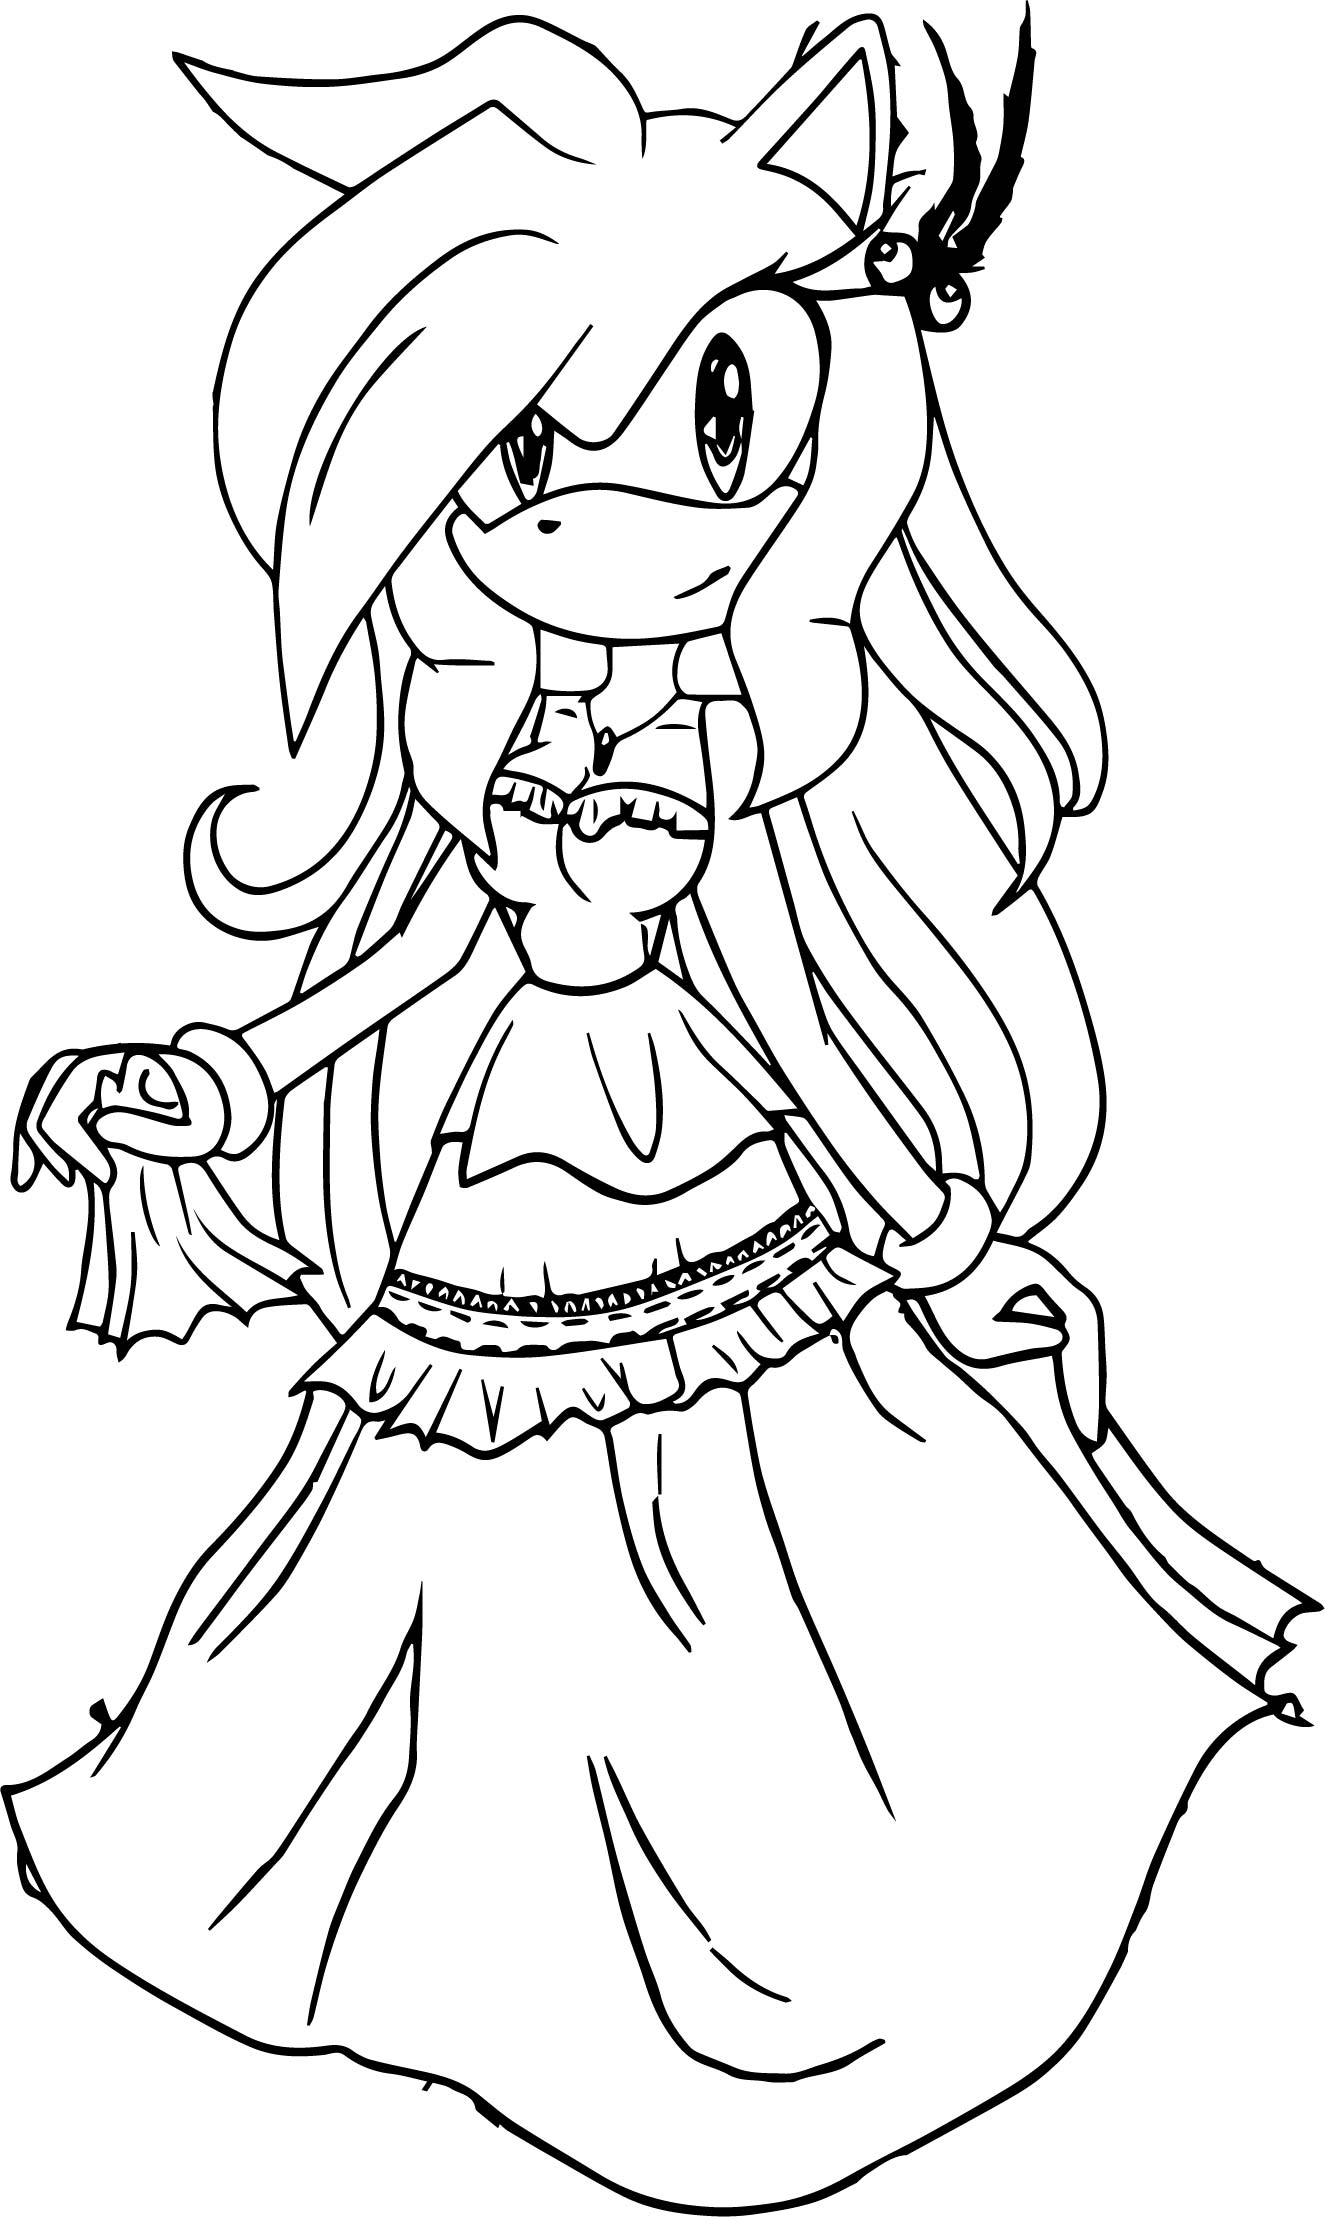 Fantastic Dress Amy Rose Coloring Page | Wecoloringpage.com